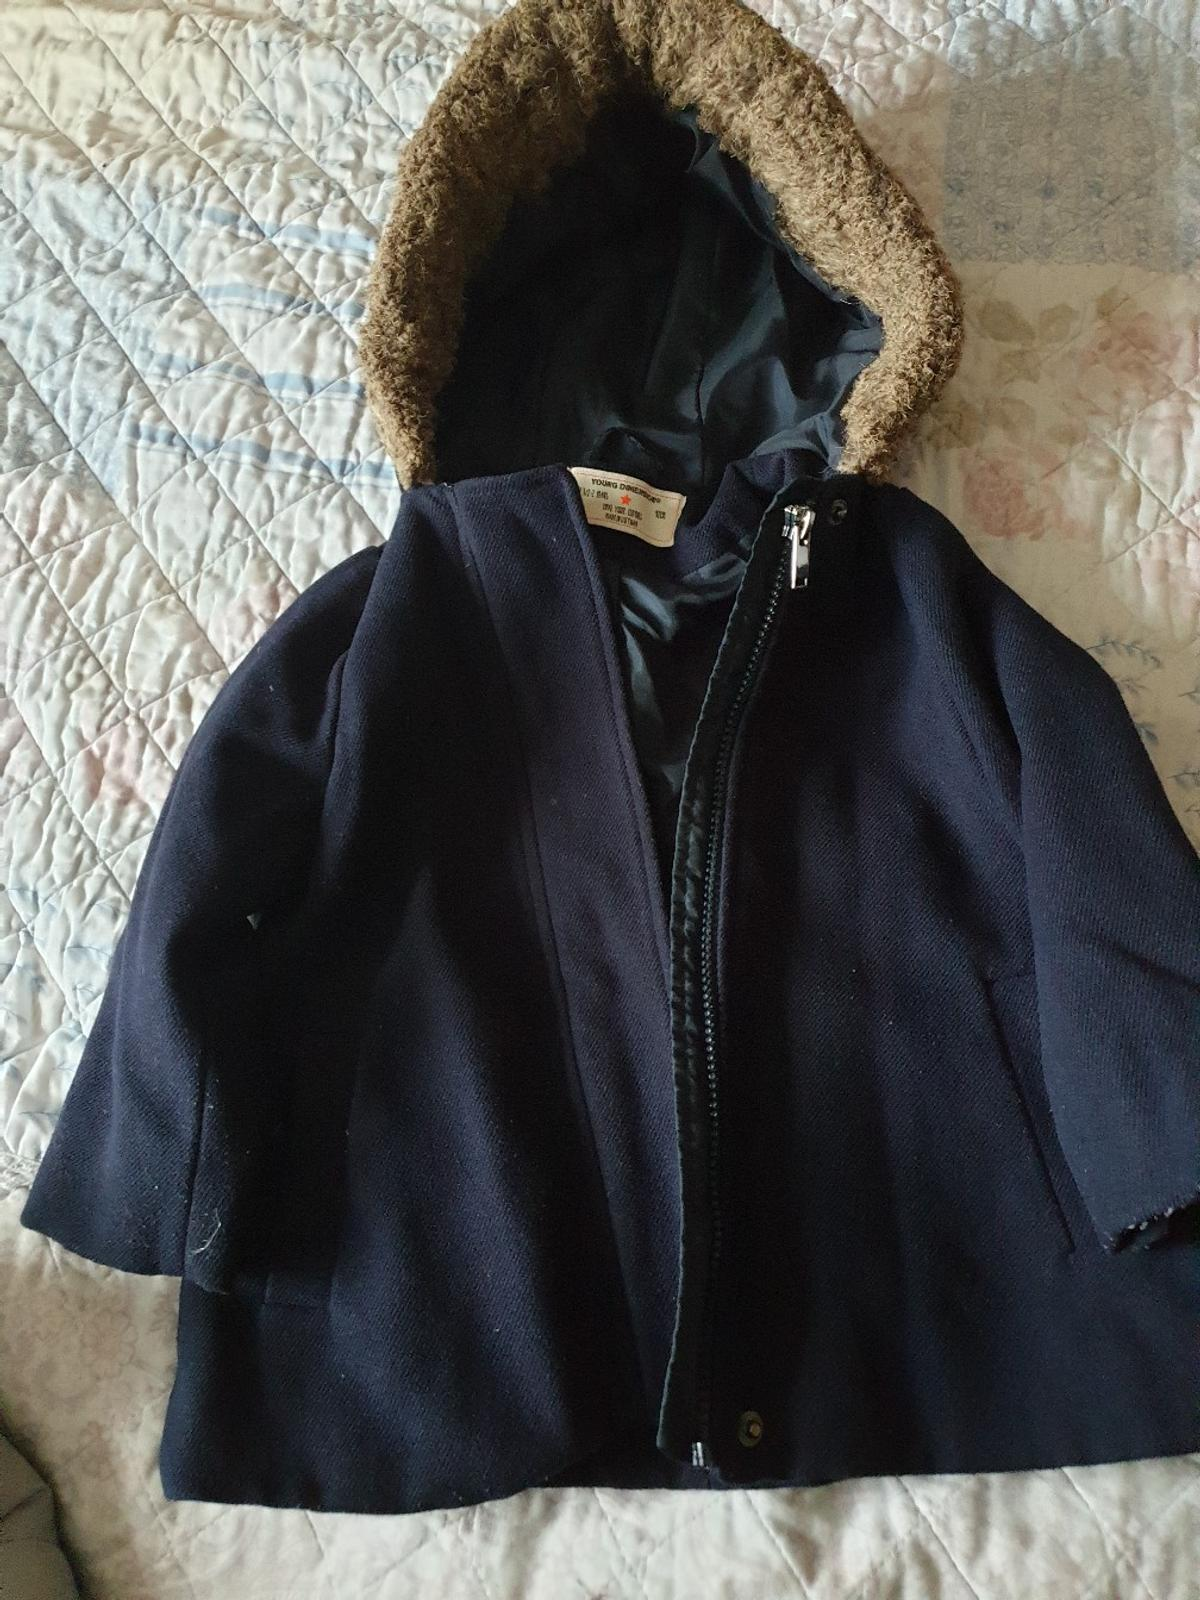 Worn but still got a lot more wear. Having a big clear out of all my unwanted daughter coats that no longer fit or is needed. Size: 1-2 Years From a pet and smoke free home I have over 300 items for sale Please check out my other items Sold as seen No Refunds